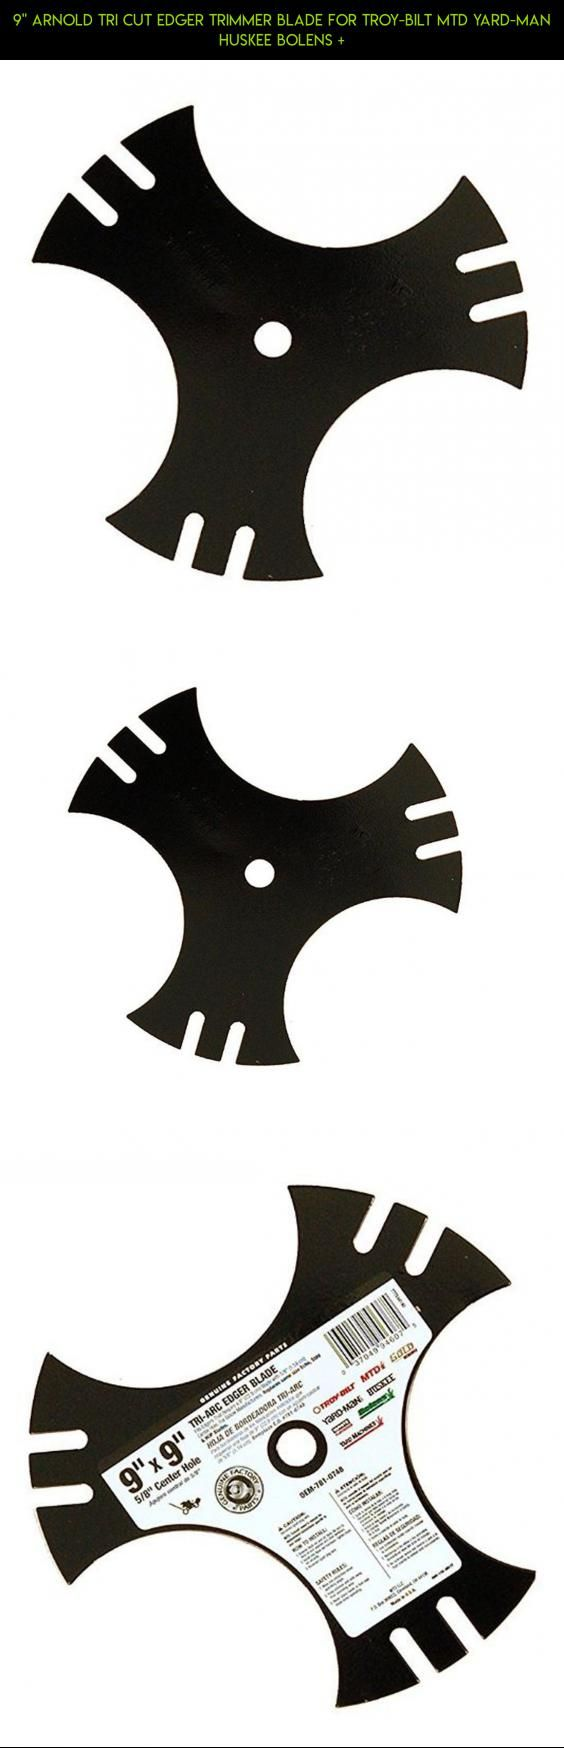 """9"""" Arnold Tri Cut Edger Trimmer Blade for Troy-Bilt MTD Yard-Man Huskee Bolens + #men #gadgets #trimmers #for #camera #technology #fpv #tech #products #shopping #kit #drone #parts #racing #plans"""